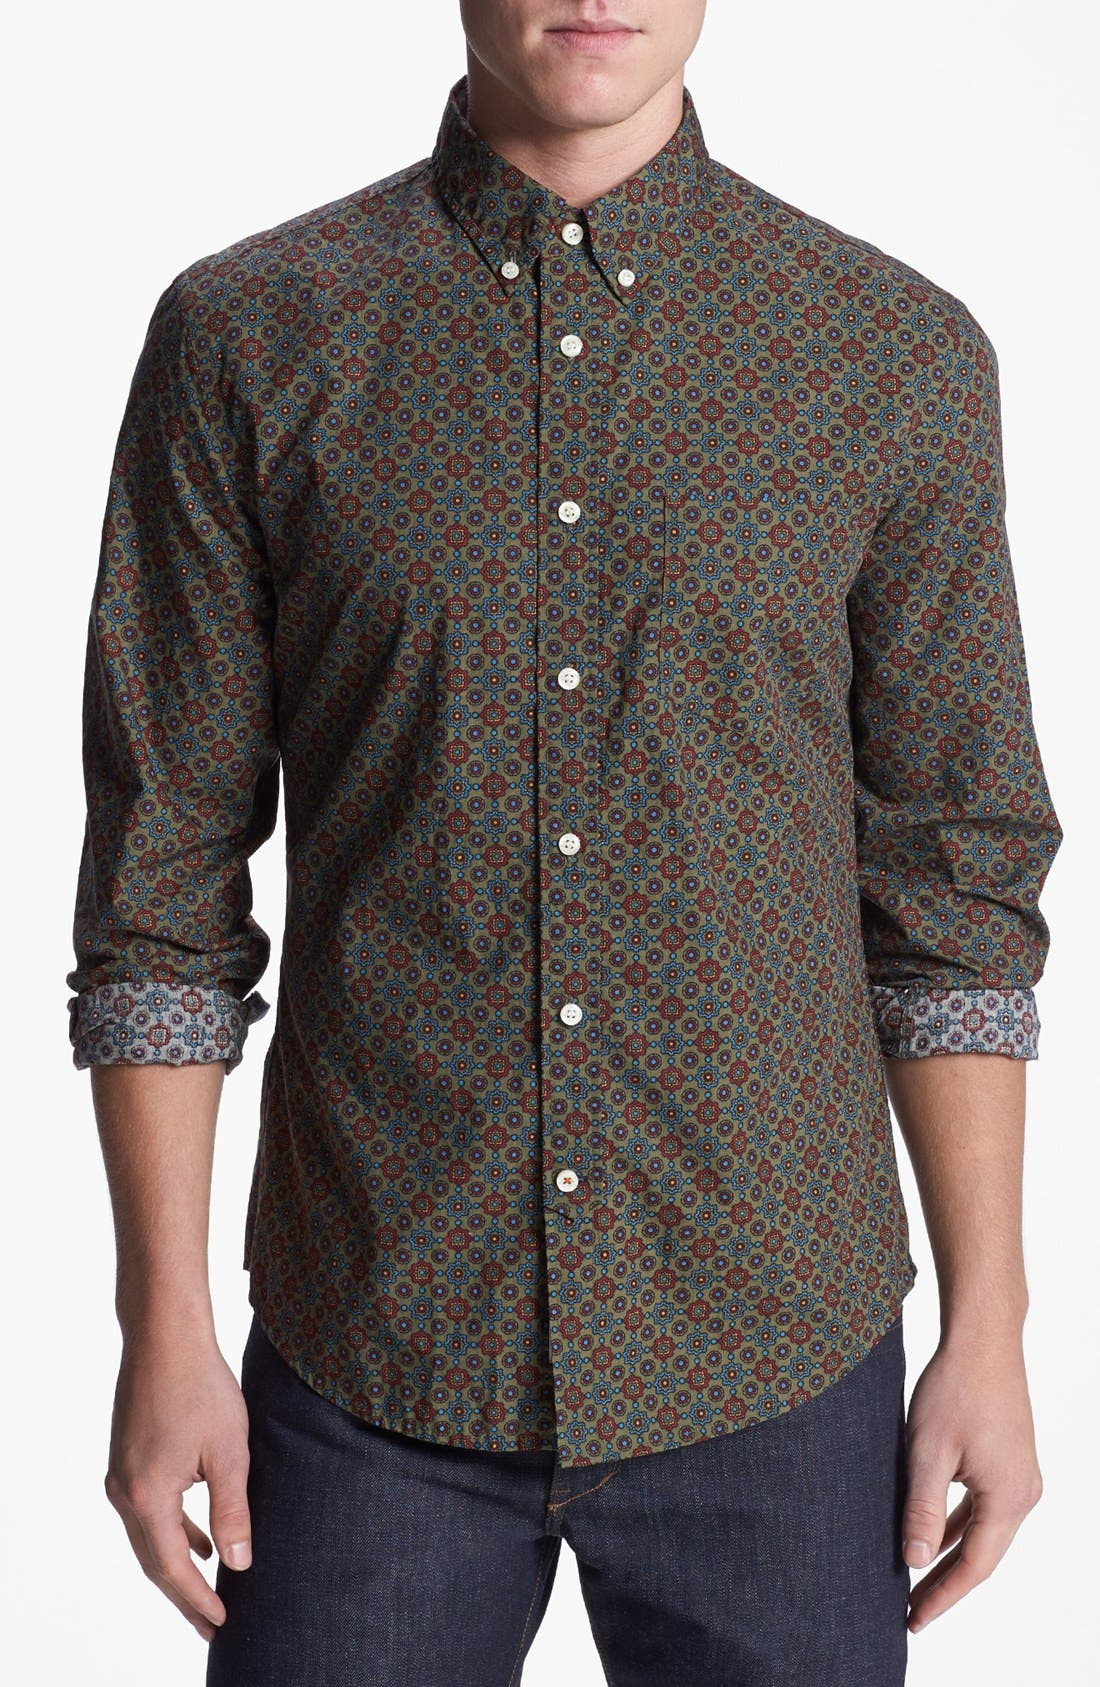 Alternate Image 1 Selected - Dockers® Print Woven Shirt